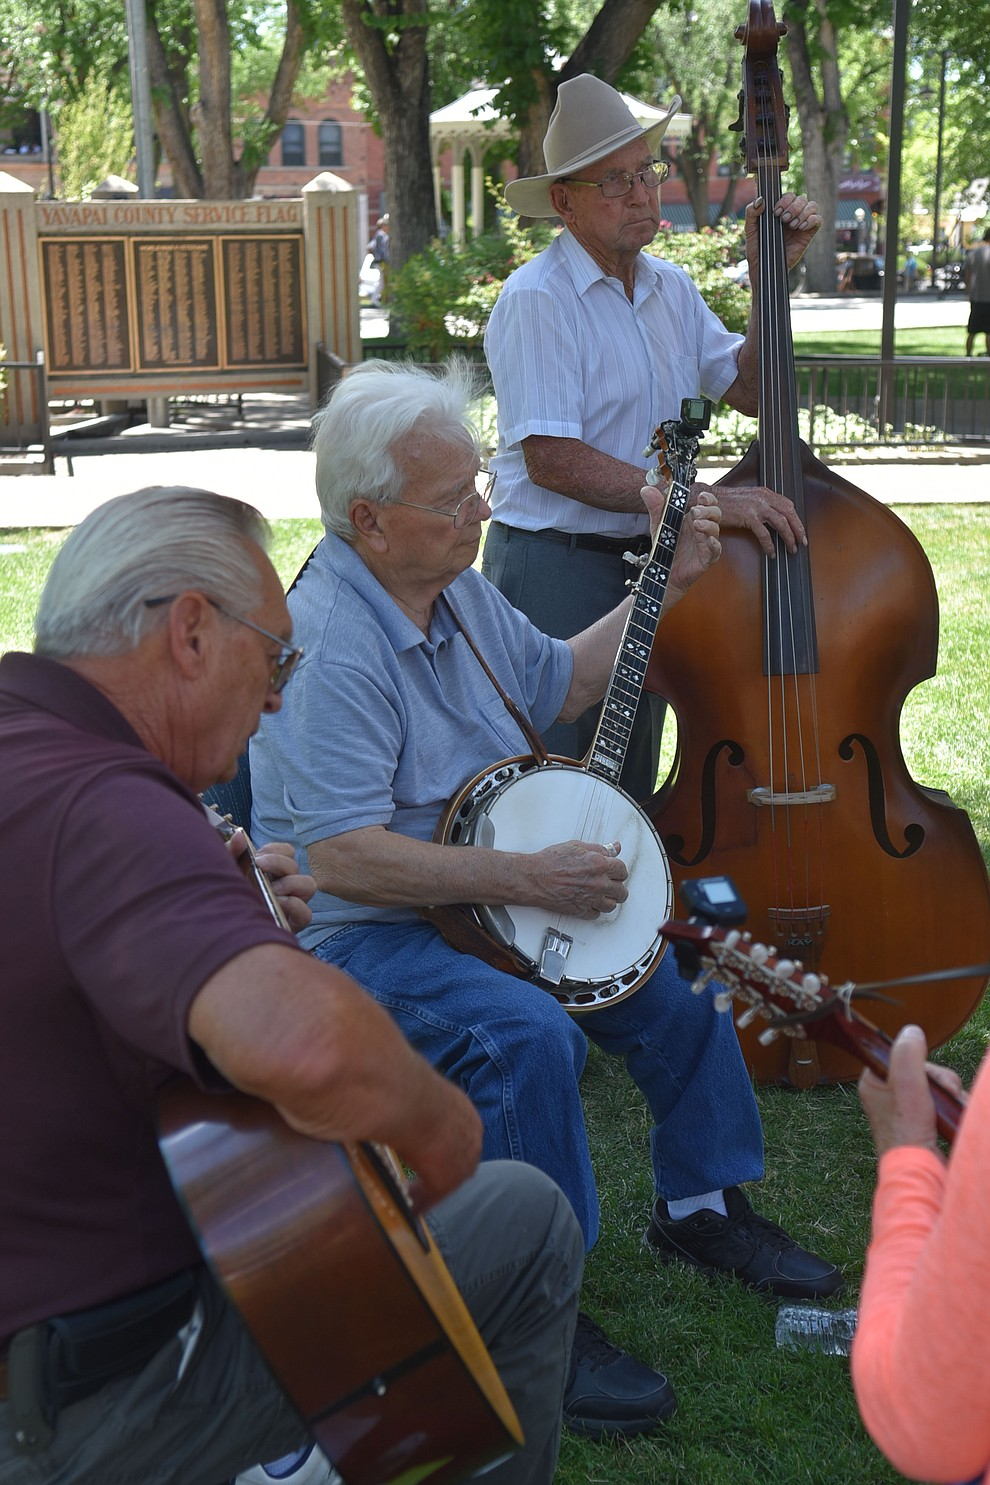 Another side jam takes place on the other side of the courthouse lawn during the Prescott Bluegrass Festival at the Yavapai County Courthouse on Saturday afternoon, June 27, 2020. (Jesse Bertel/Courier)